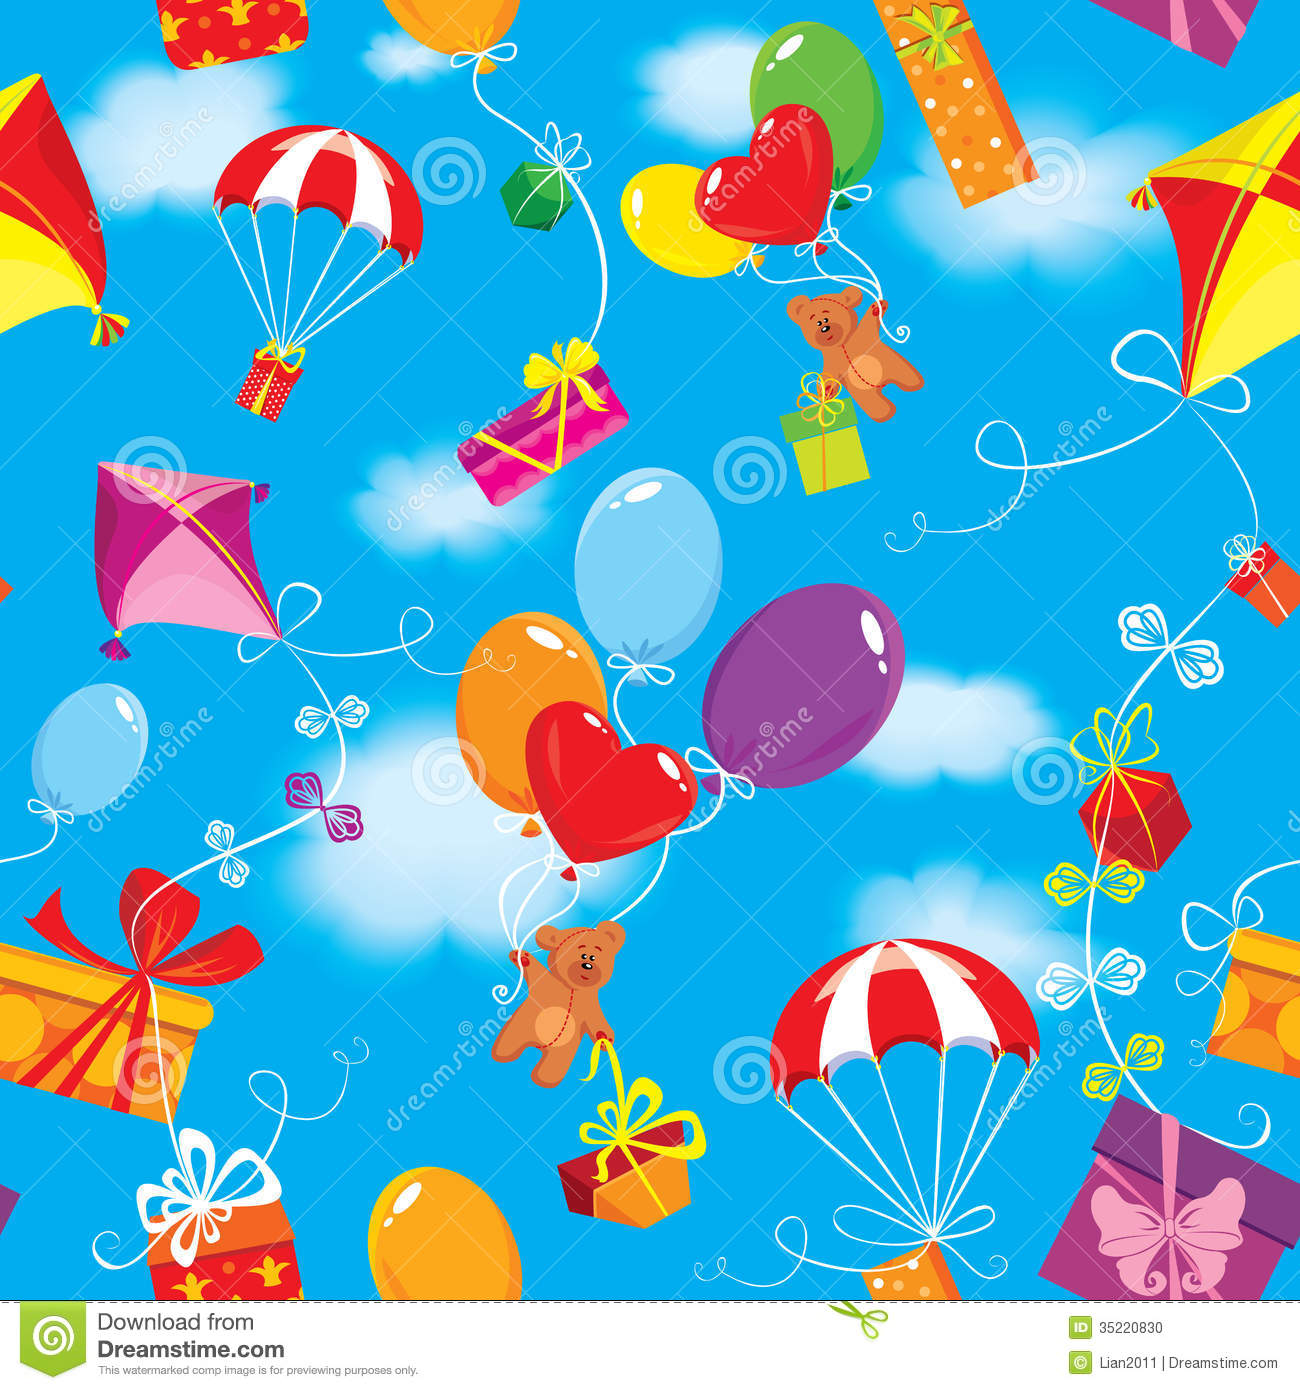 Kite Background Seamless pattern with colorful